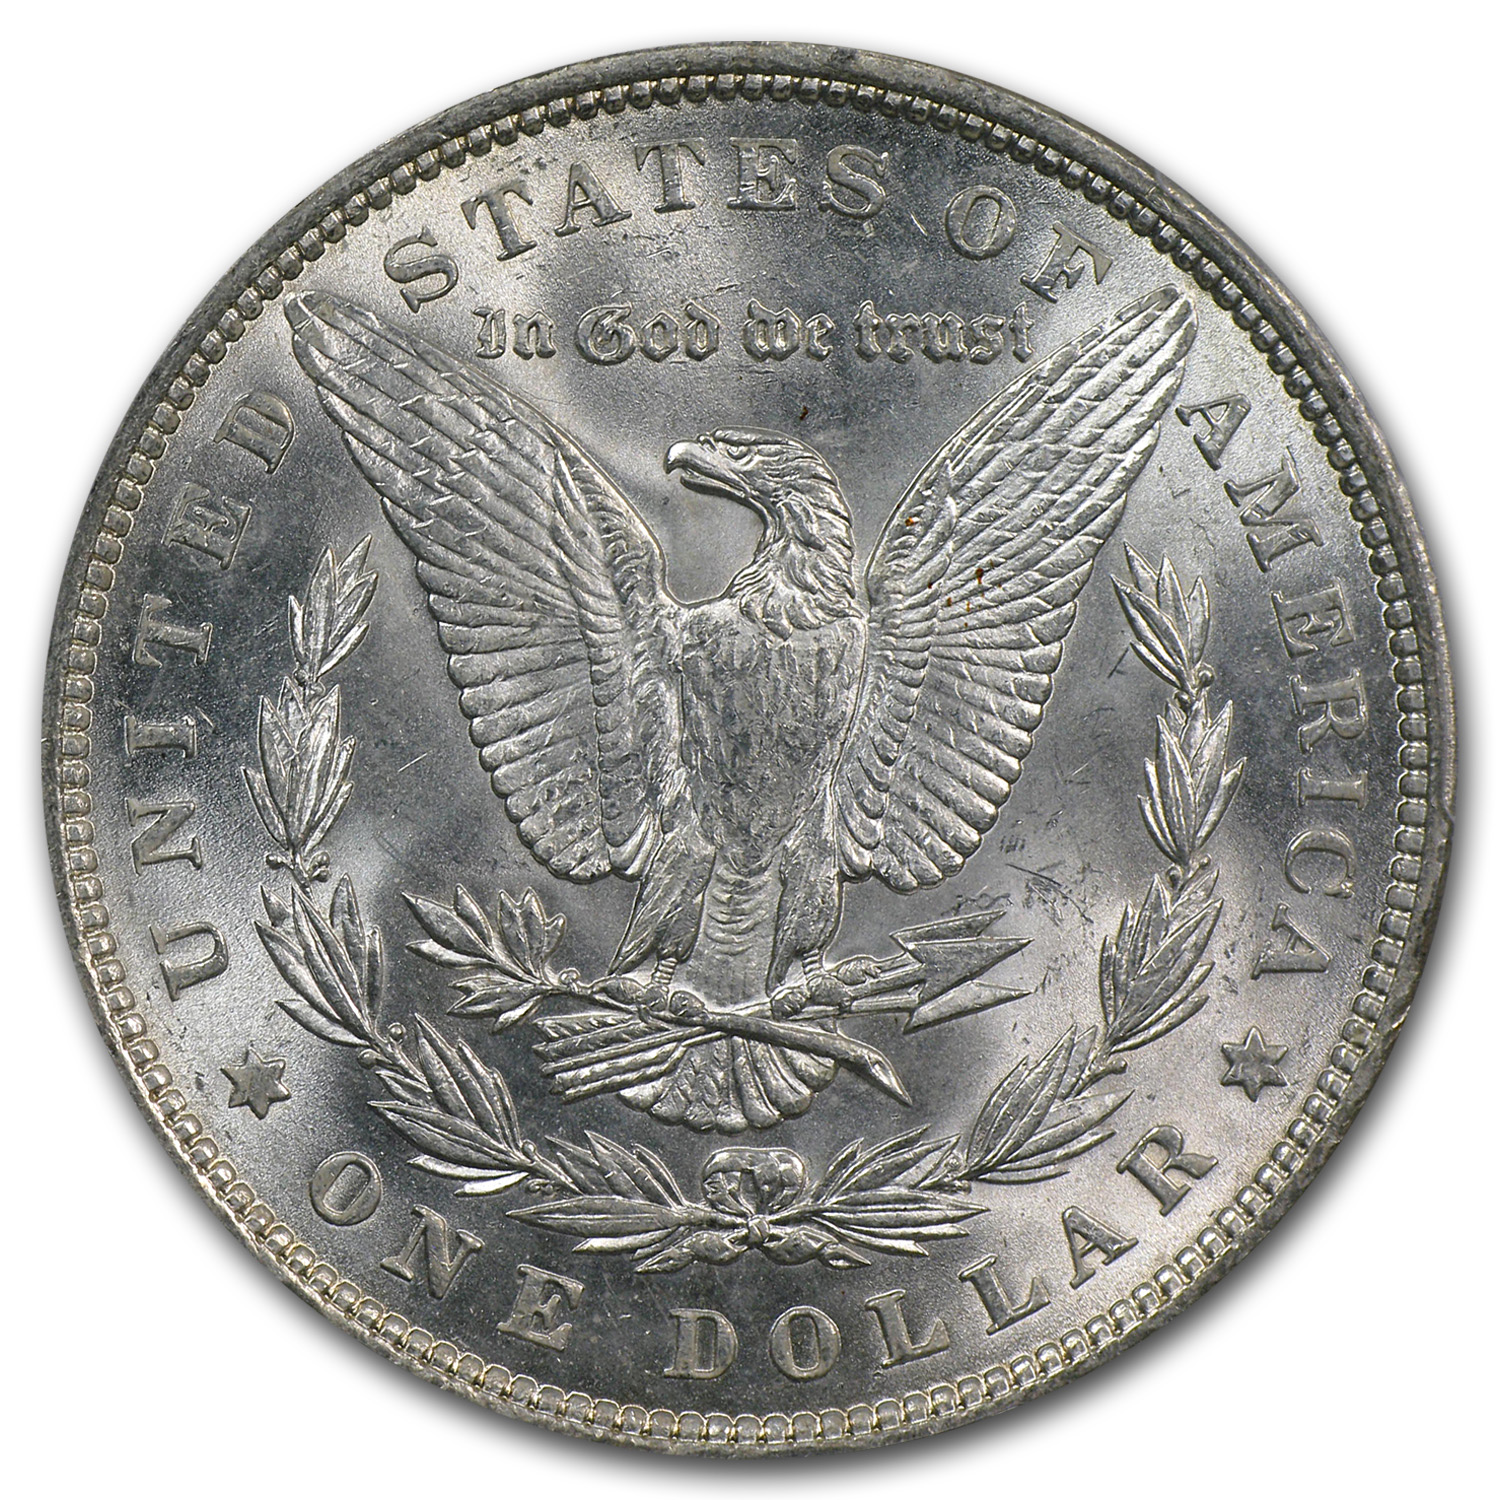 1878-1904 Morgan Dollars - MS-63 PCGS (Philadelphia Mint)